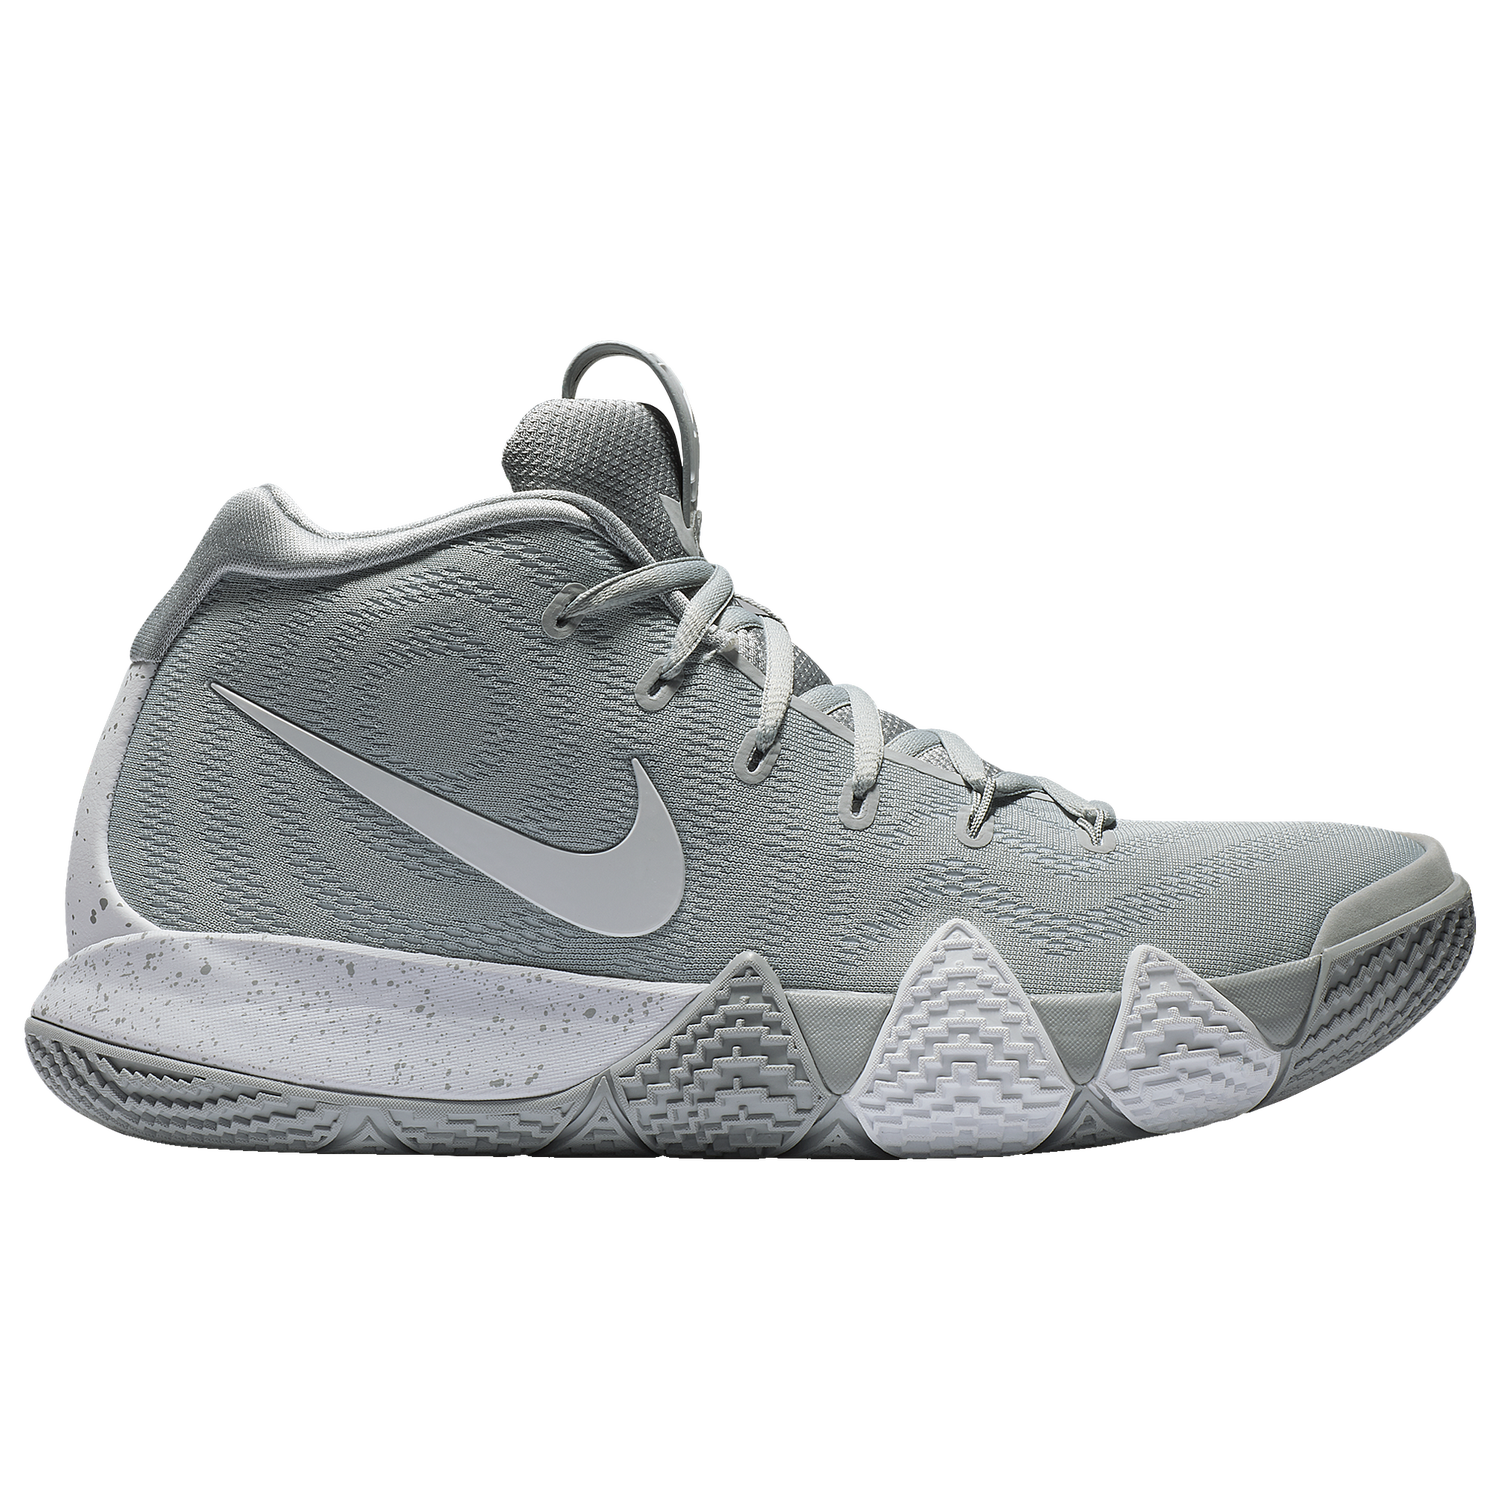 5747c2fe4e0 greece jordan future wolf grey kyrie irving 71541 f23e6